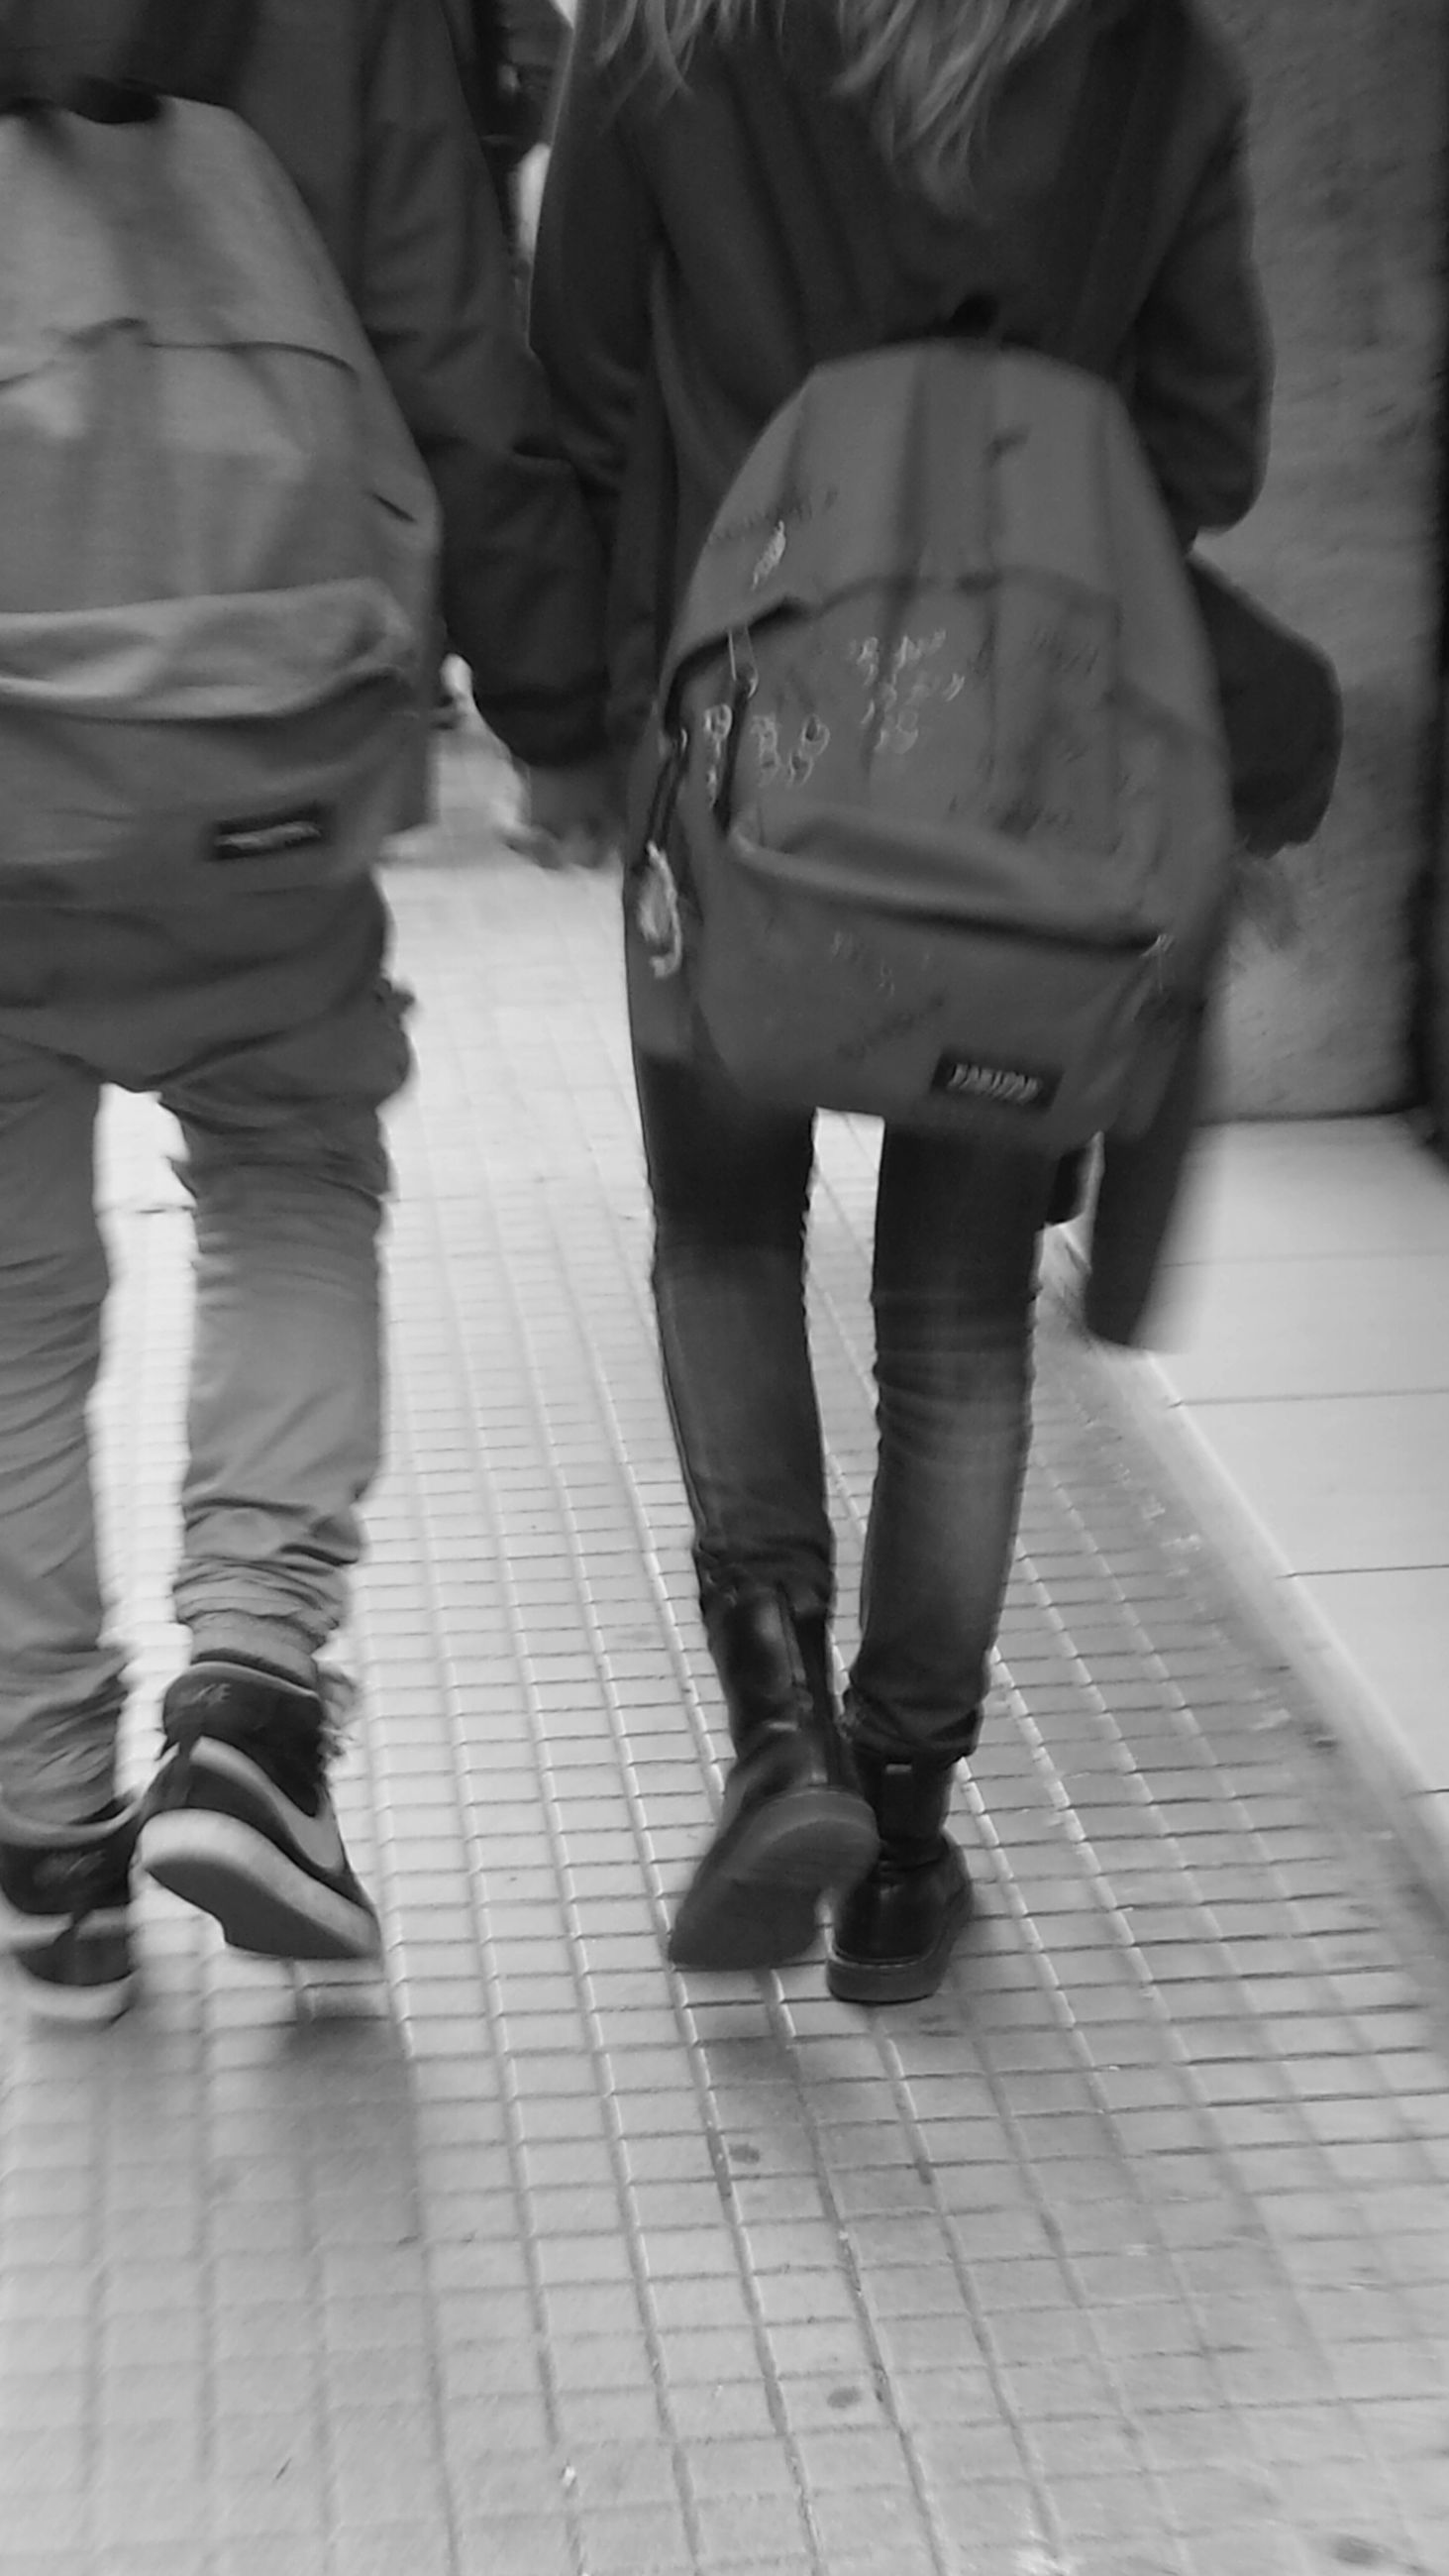 lifestyles, men, casual clothing, standing, walking, leisure activity, rear view, person, low section, full length, togetherness, indoors, street, city life, day, jeans